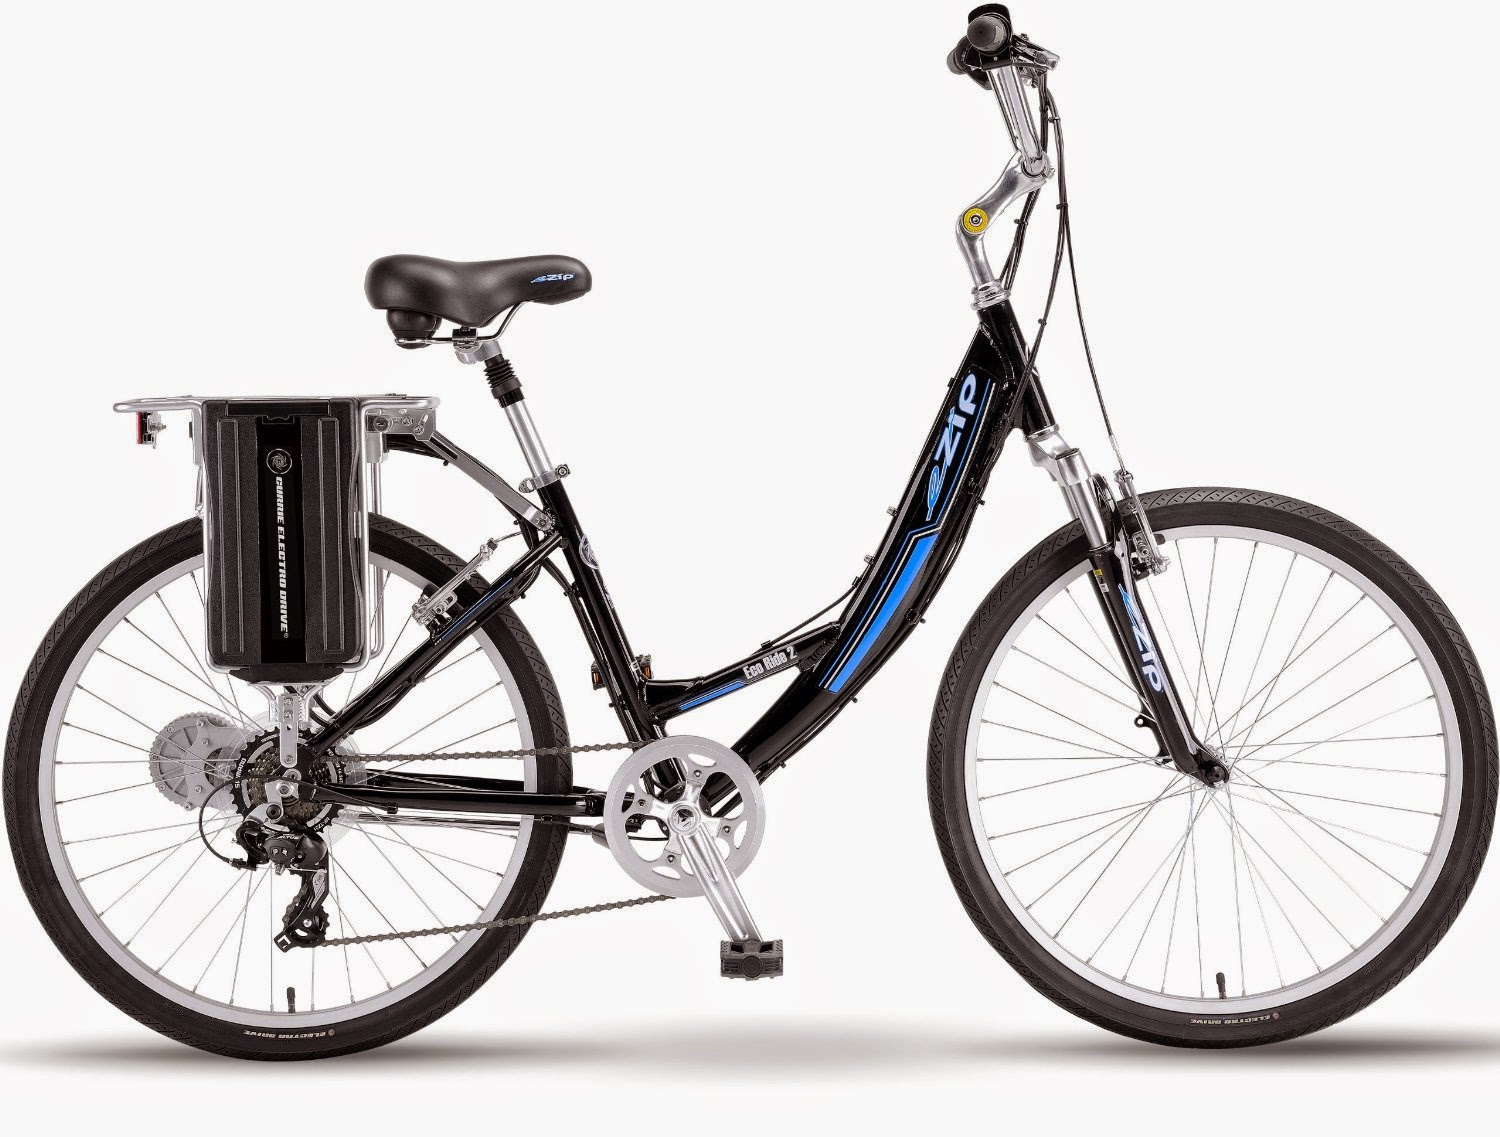 Women's eZip Eco-Ride-2 SLA Electric Bicycle, review, speeds up to 15 mph, distance range up to 22 miles